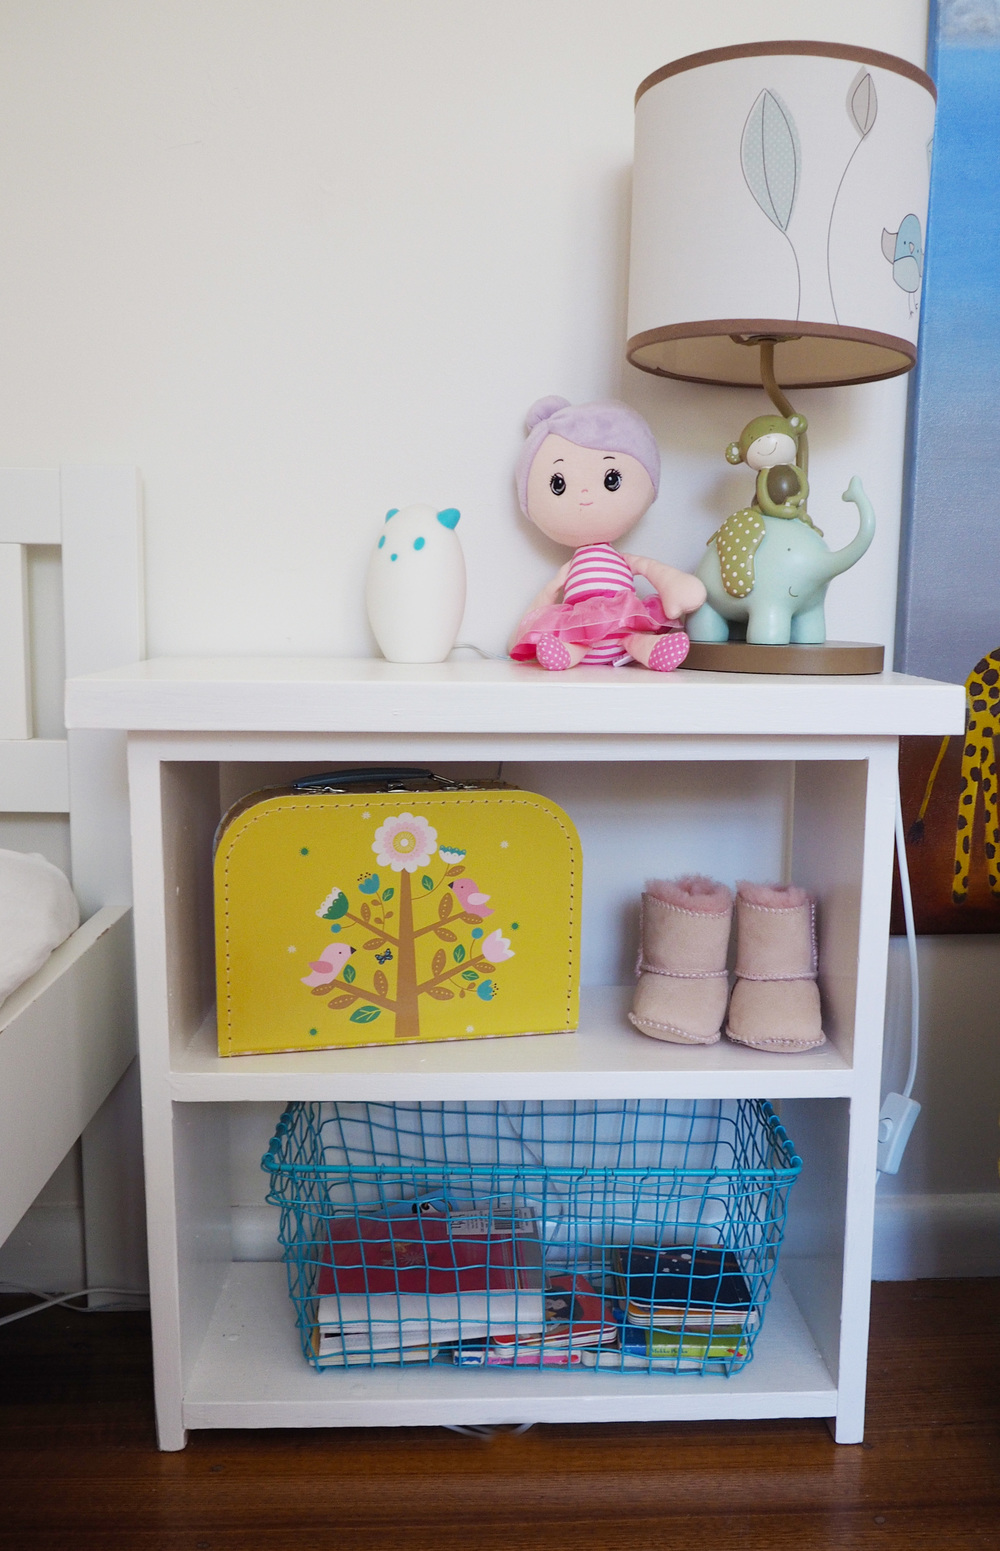 A new child's bedside table - repurposing an old shoe rack into a piece that fits perfectly in the space!